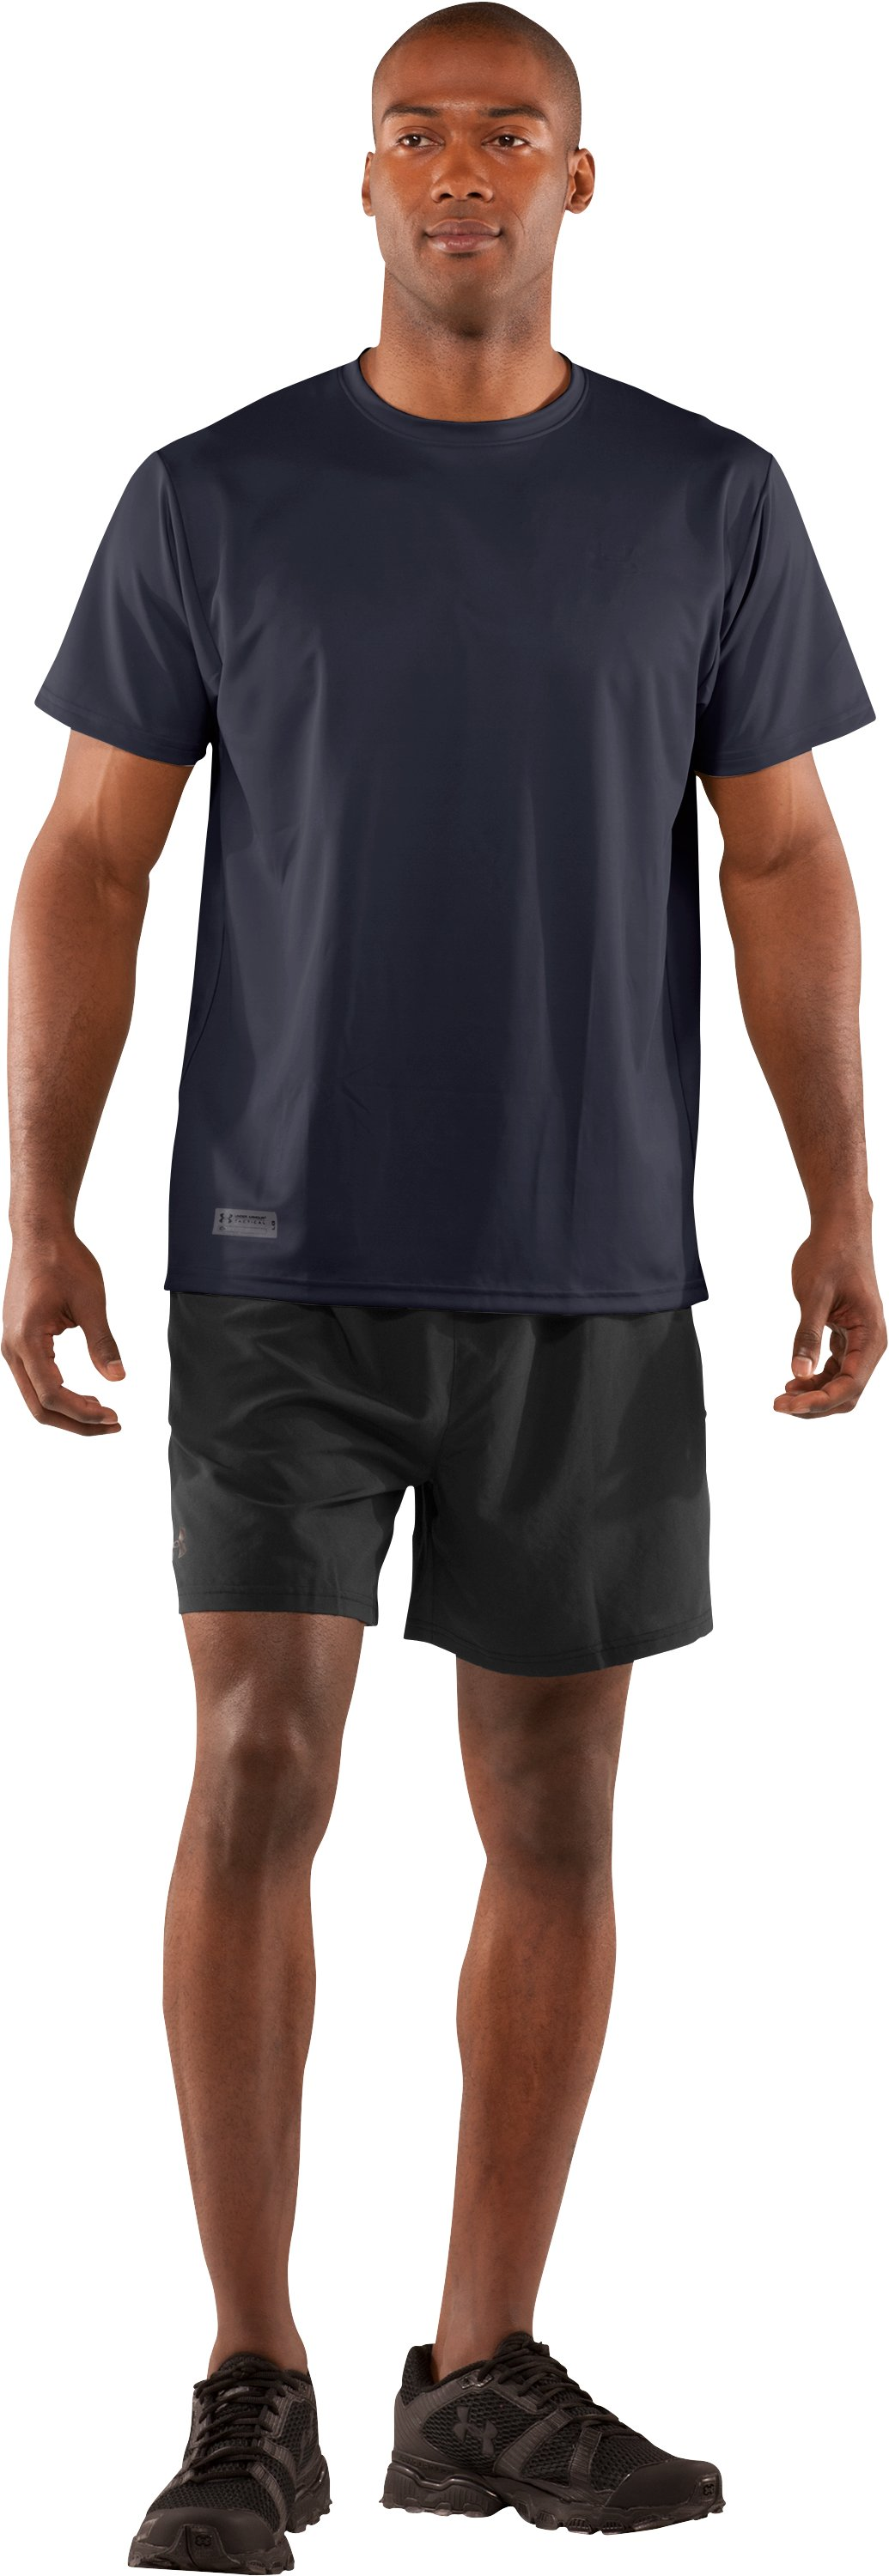 Men's UA HeatGear® Tactical Short Sleeve T-Shirt, Dark Navy Blue , Front